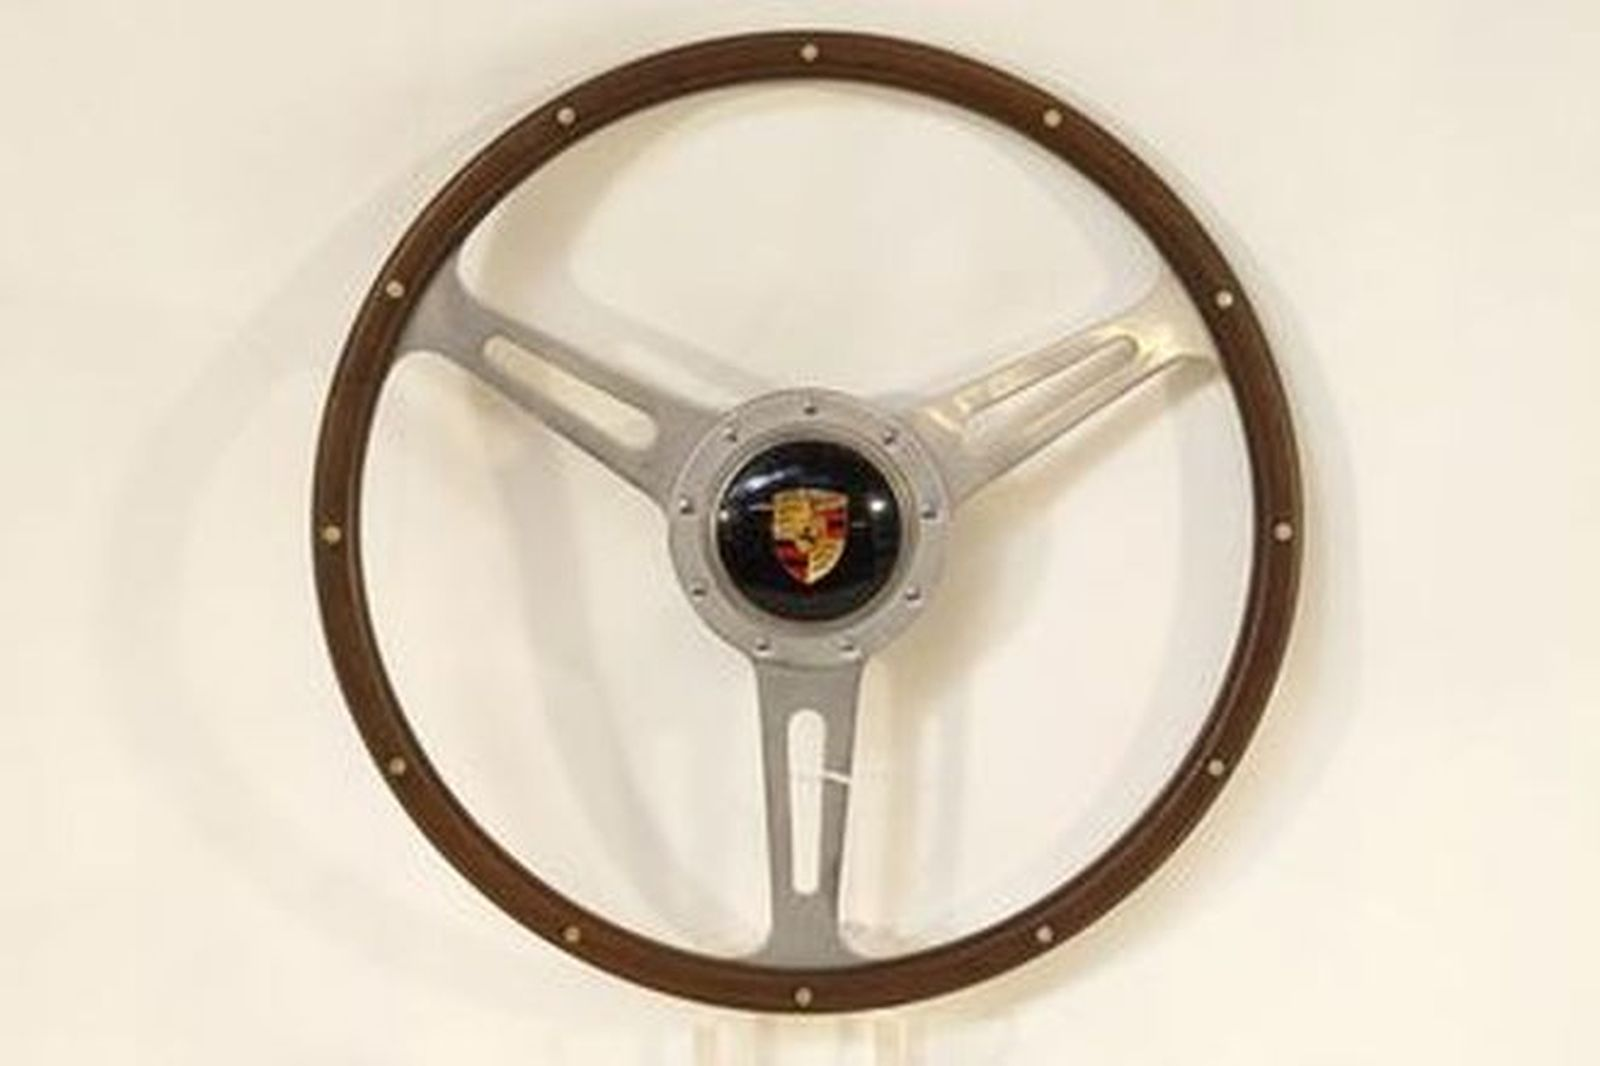 Steering wheel - 3-spoke wood rim 'Derrington style' with Boss and horn button to suit Porsche 356